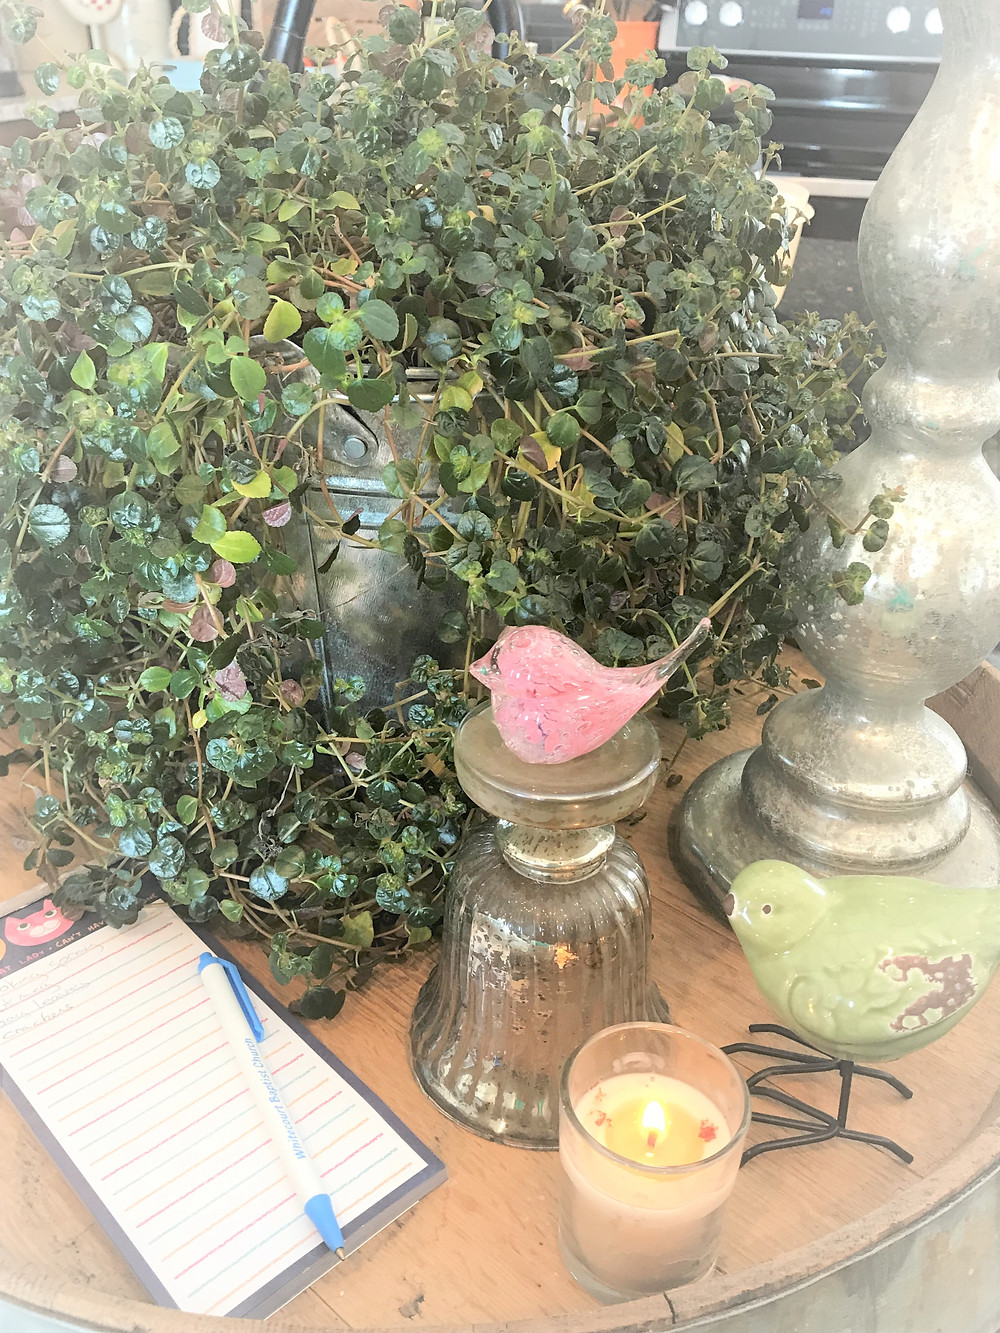 Add plants to create spring Hygge